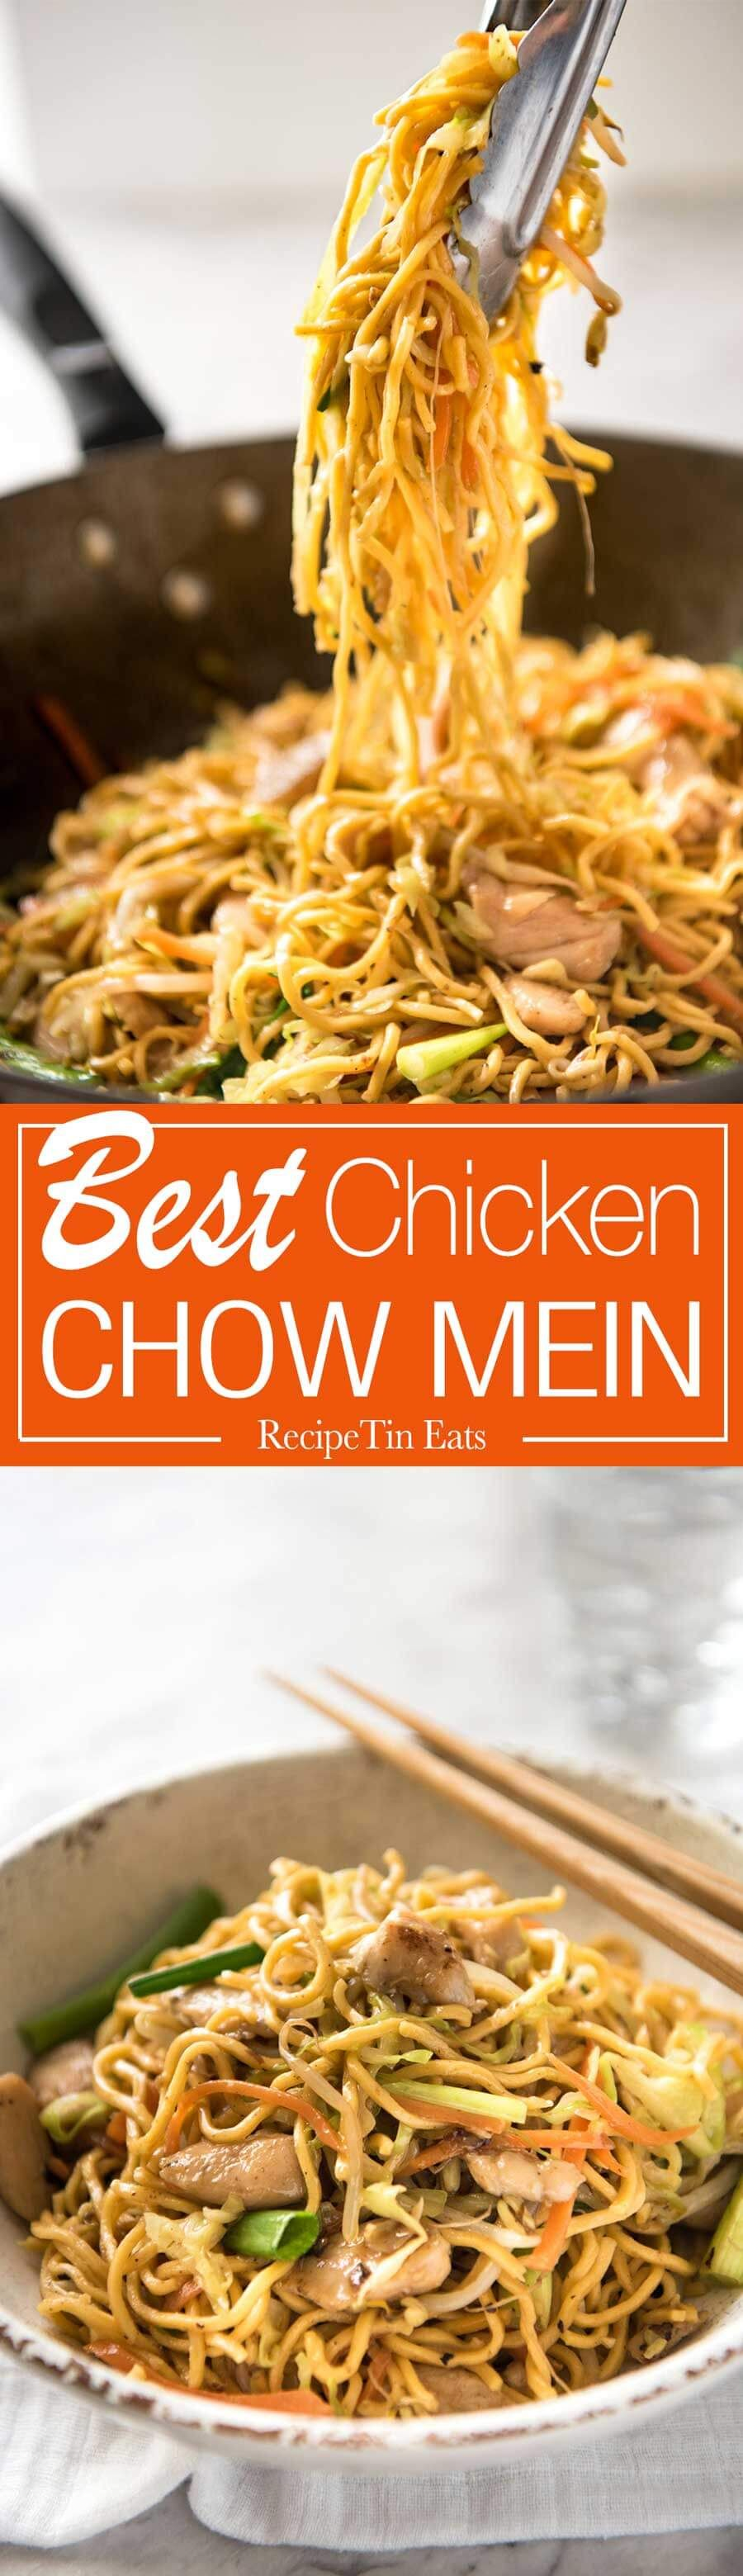 Chow Mein | Recipe | Best chicken chow mein recipe, Food ...